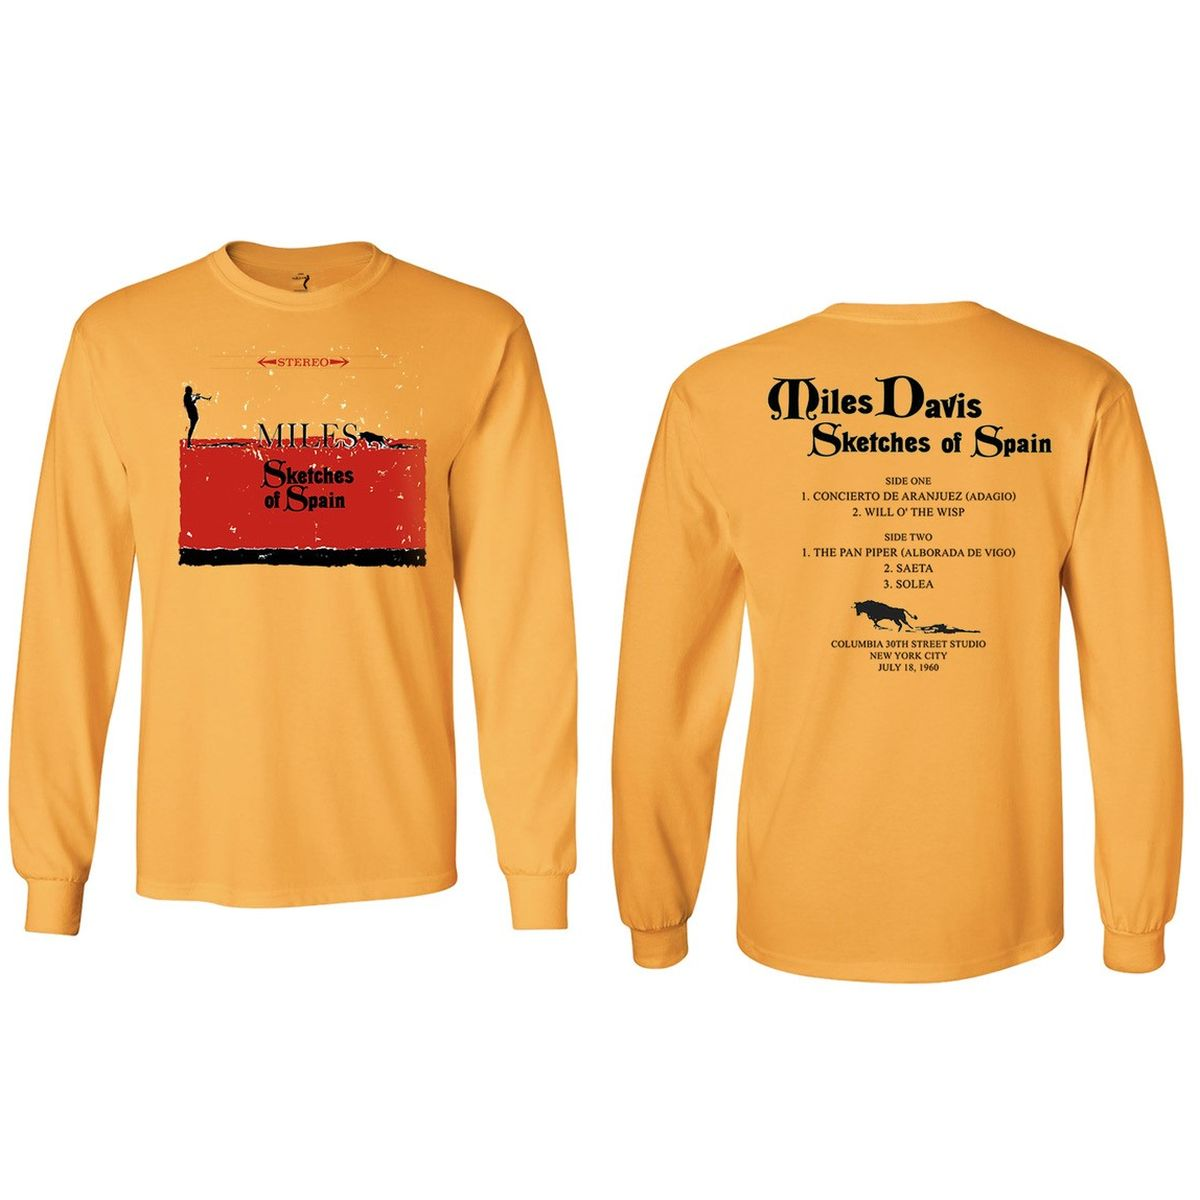 Miles Davis Sketches of Spain Longsleeve T-shirt